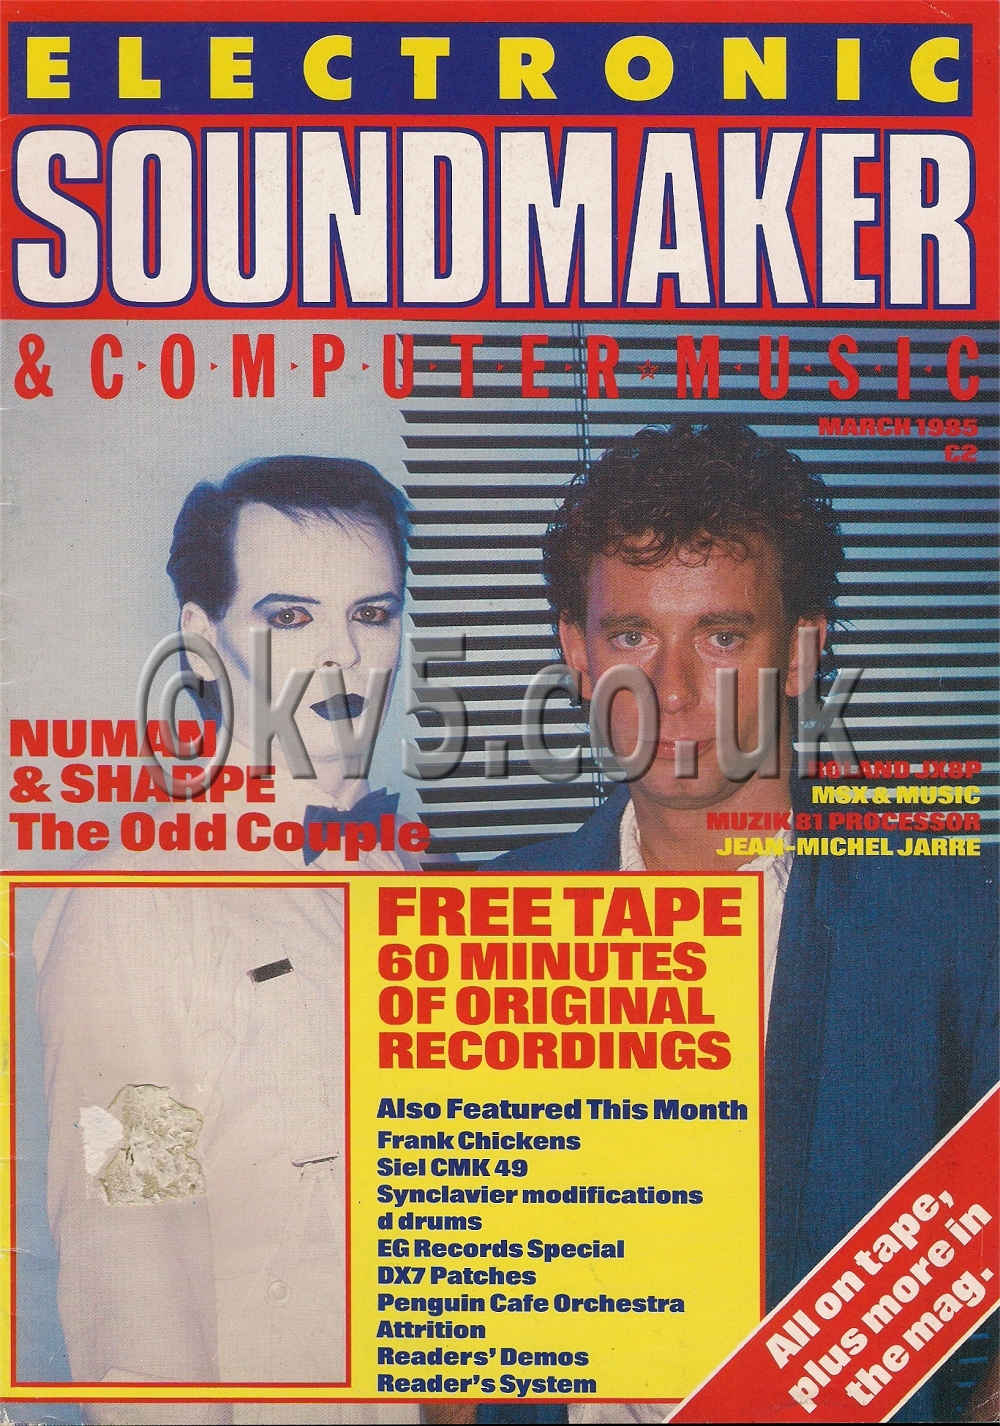 Electronic Sound Maker March 1985